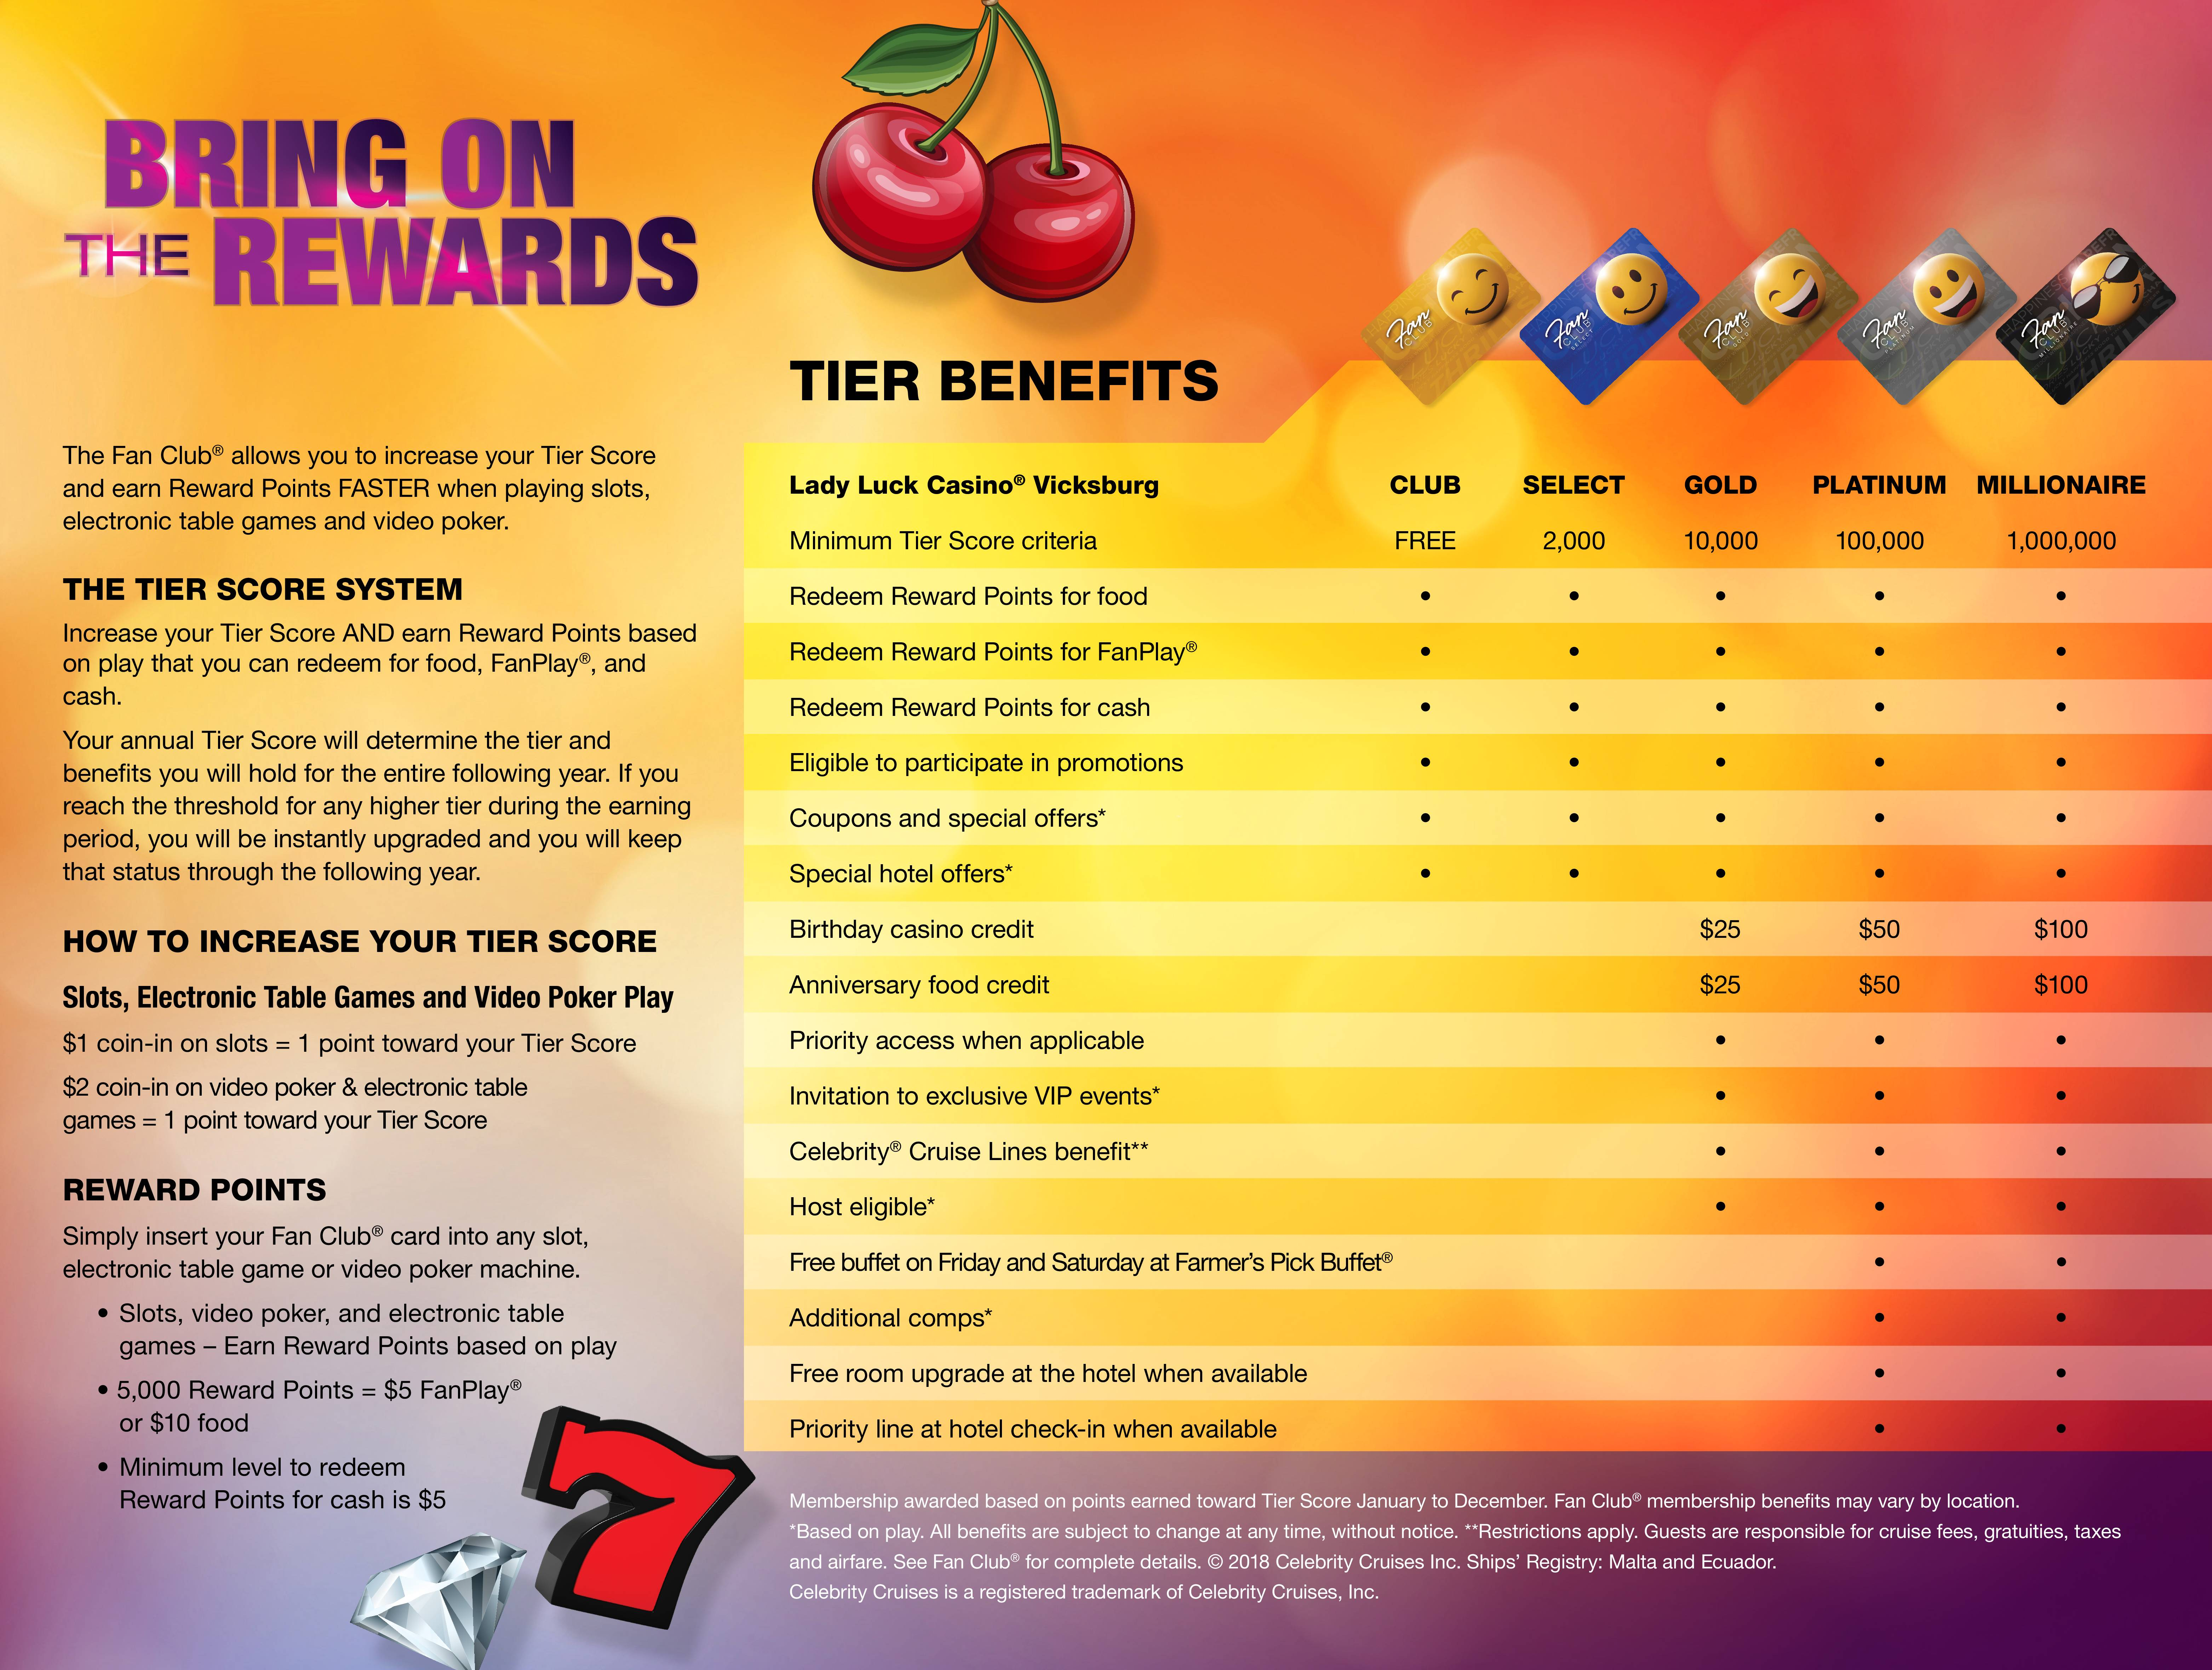 Fan Club Chart Explaining Rewards Tiers